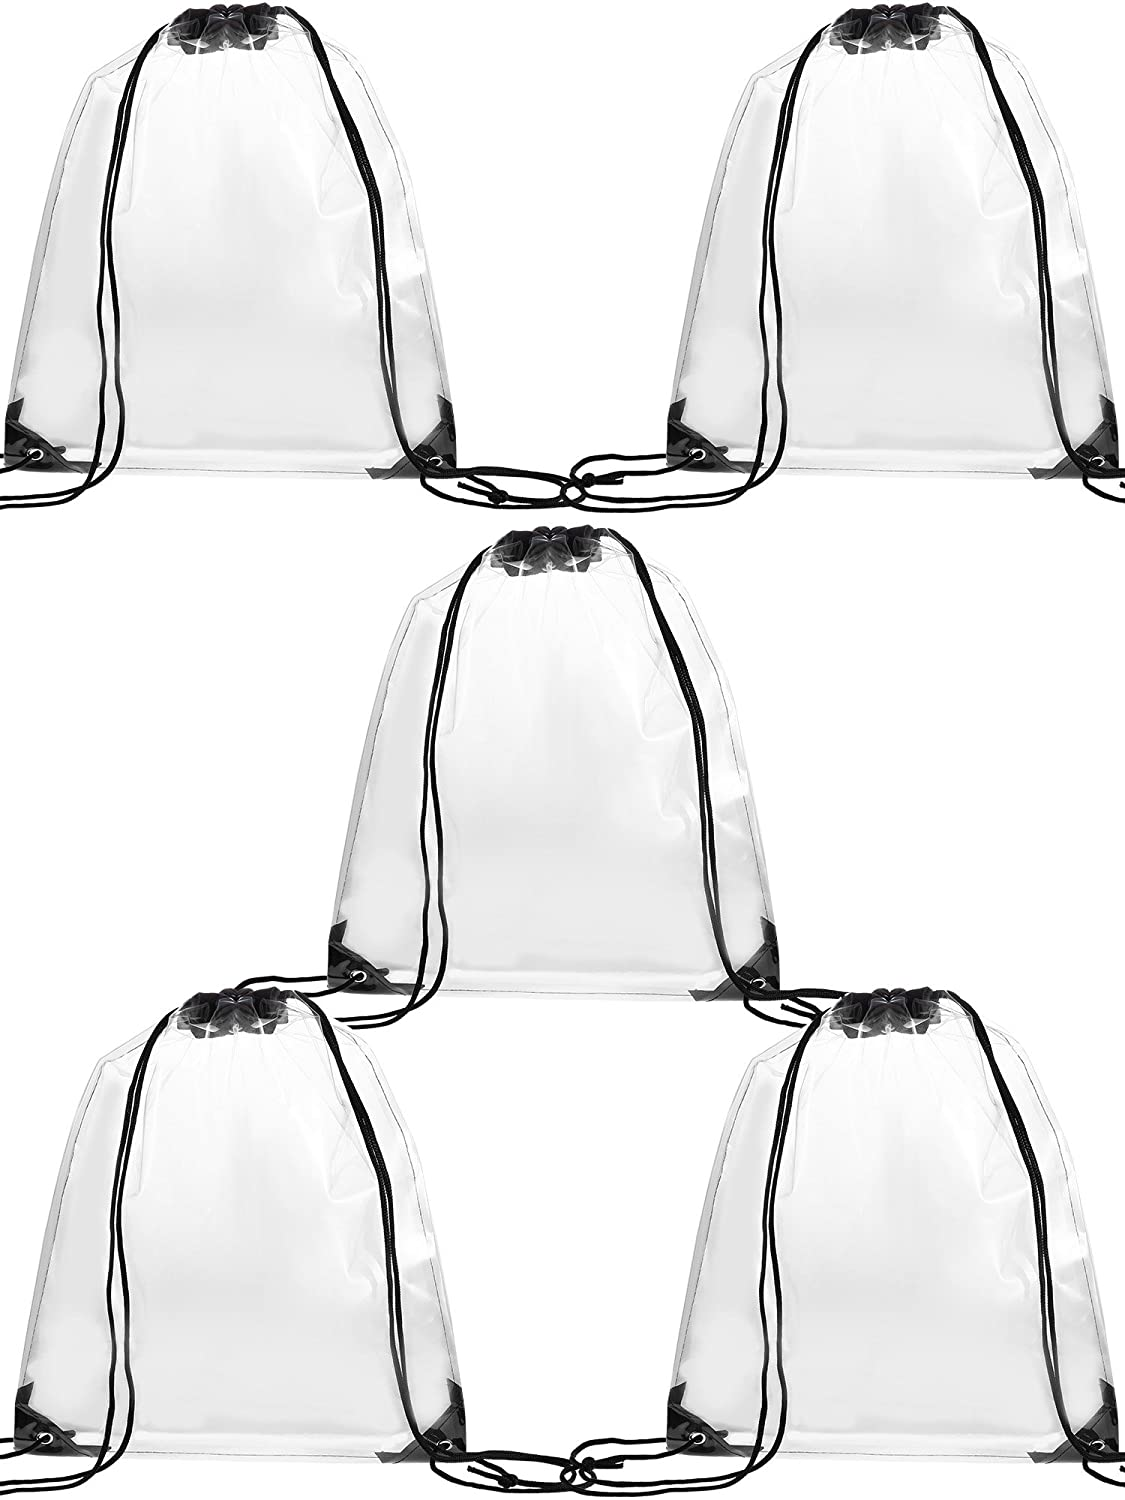 Gejoy 5 Pack Transparent Drawstring Bag Clear Cinch Bags Traveling Sport Bags (Black Edge)